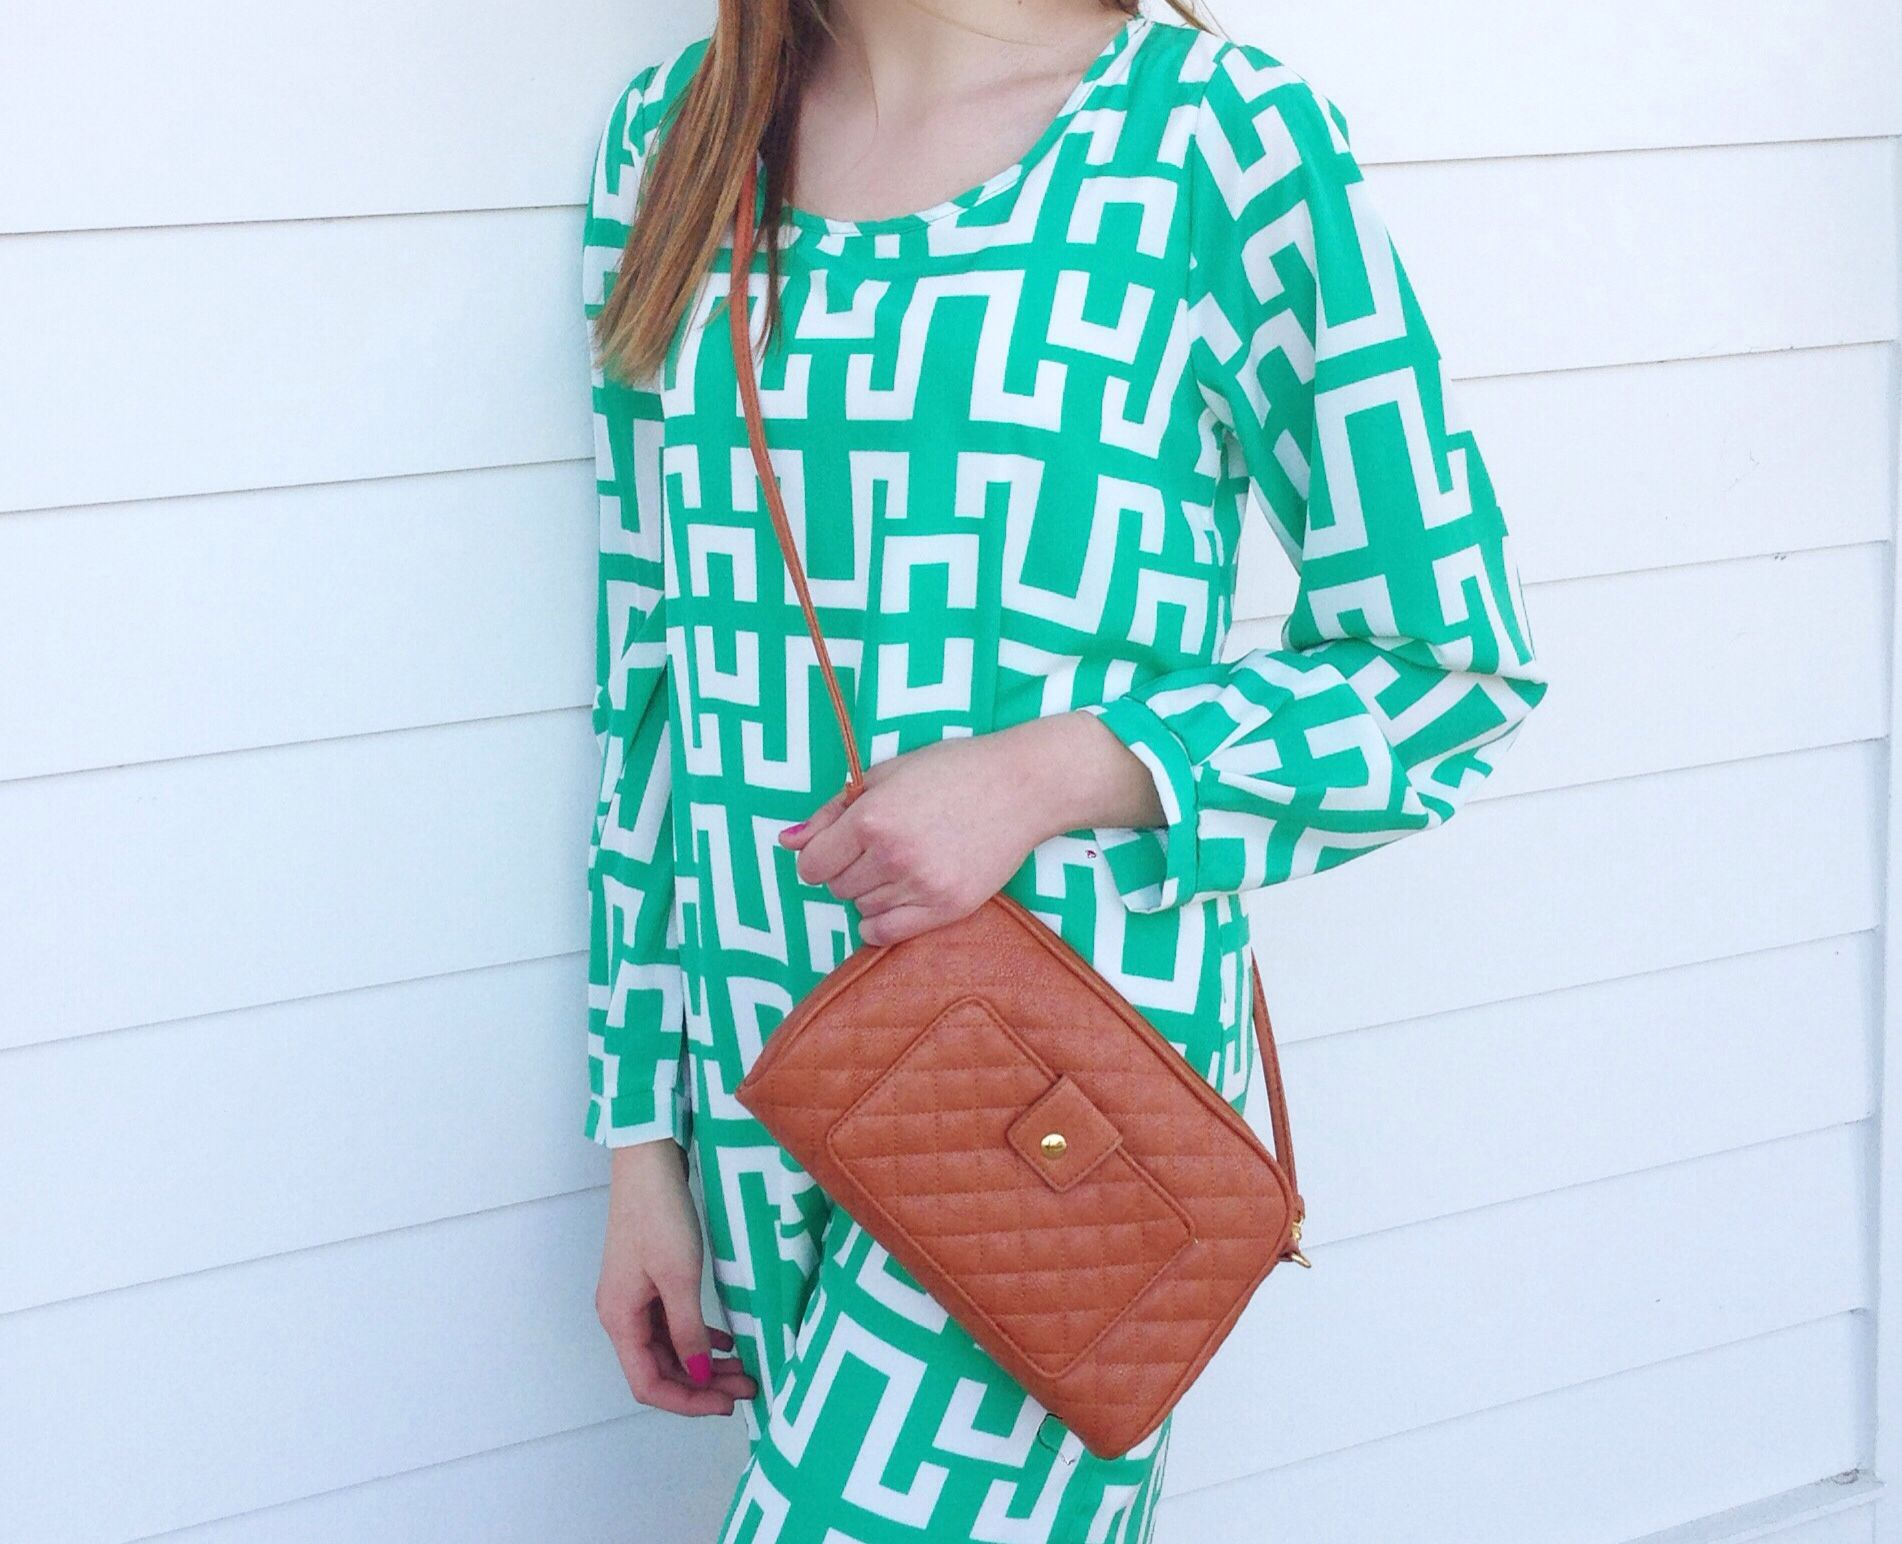 Green dress night out  Green and white dress with a brown Crossbody bag Cute outfit for a